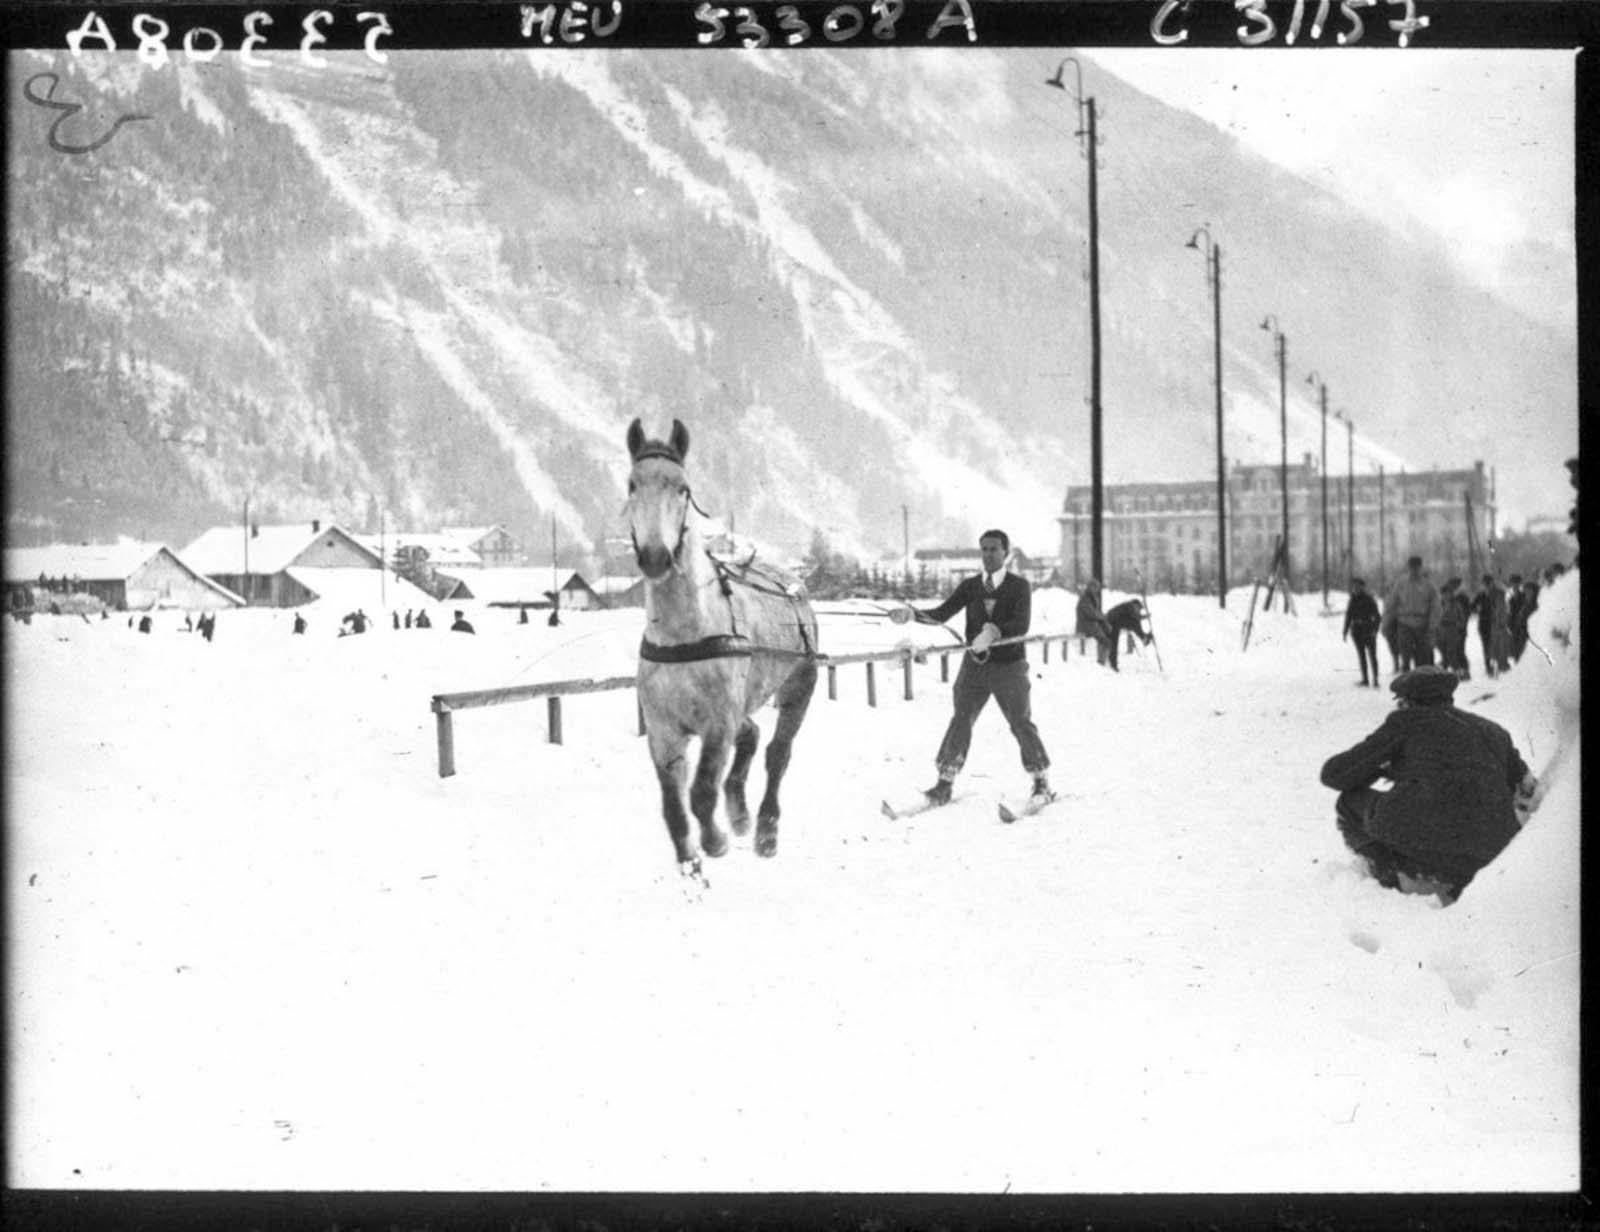 The skijoring belt worn by the skier is a wide waistband which is clipped around the skier's waist, and which may include leg loops to keep it in position.